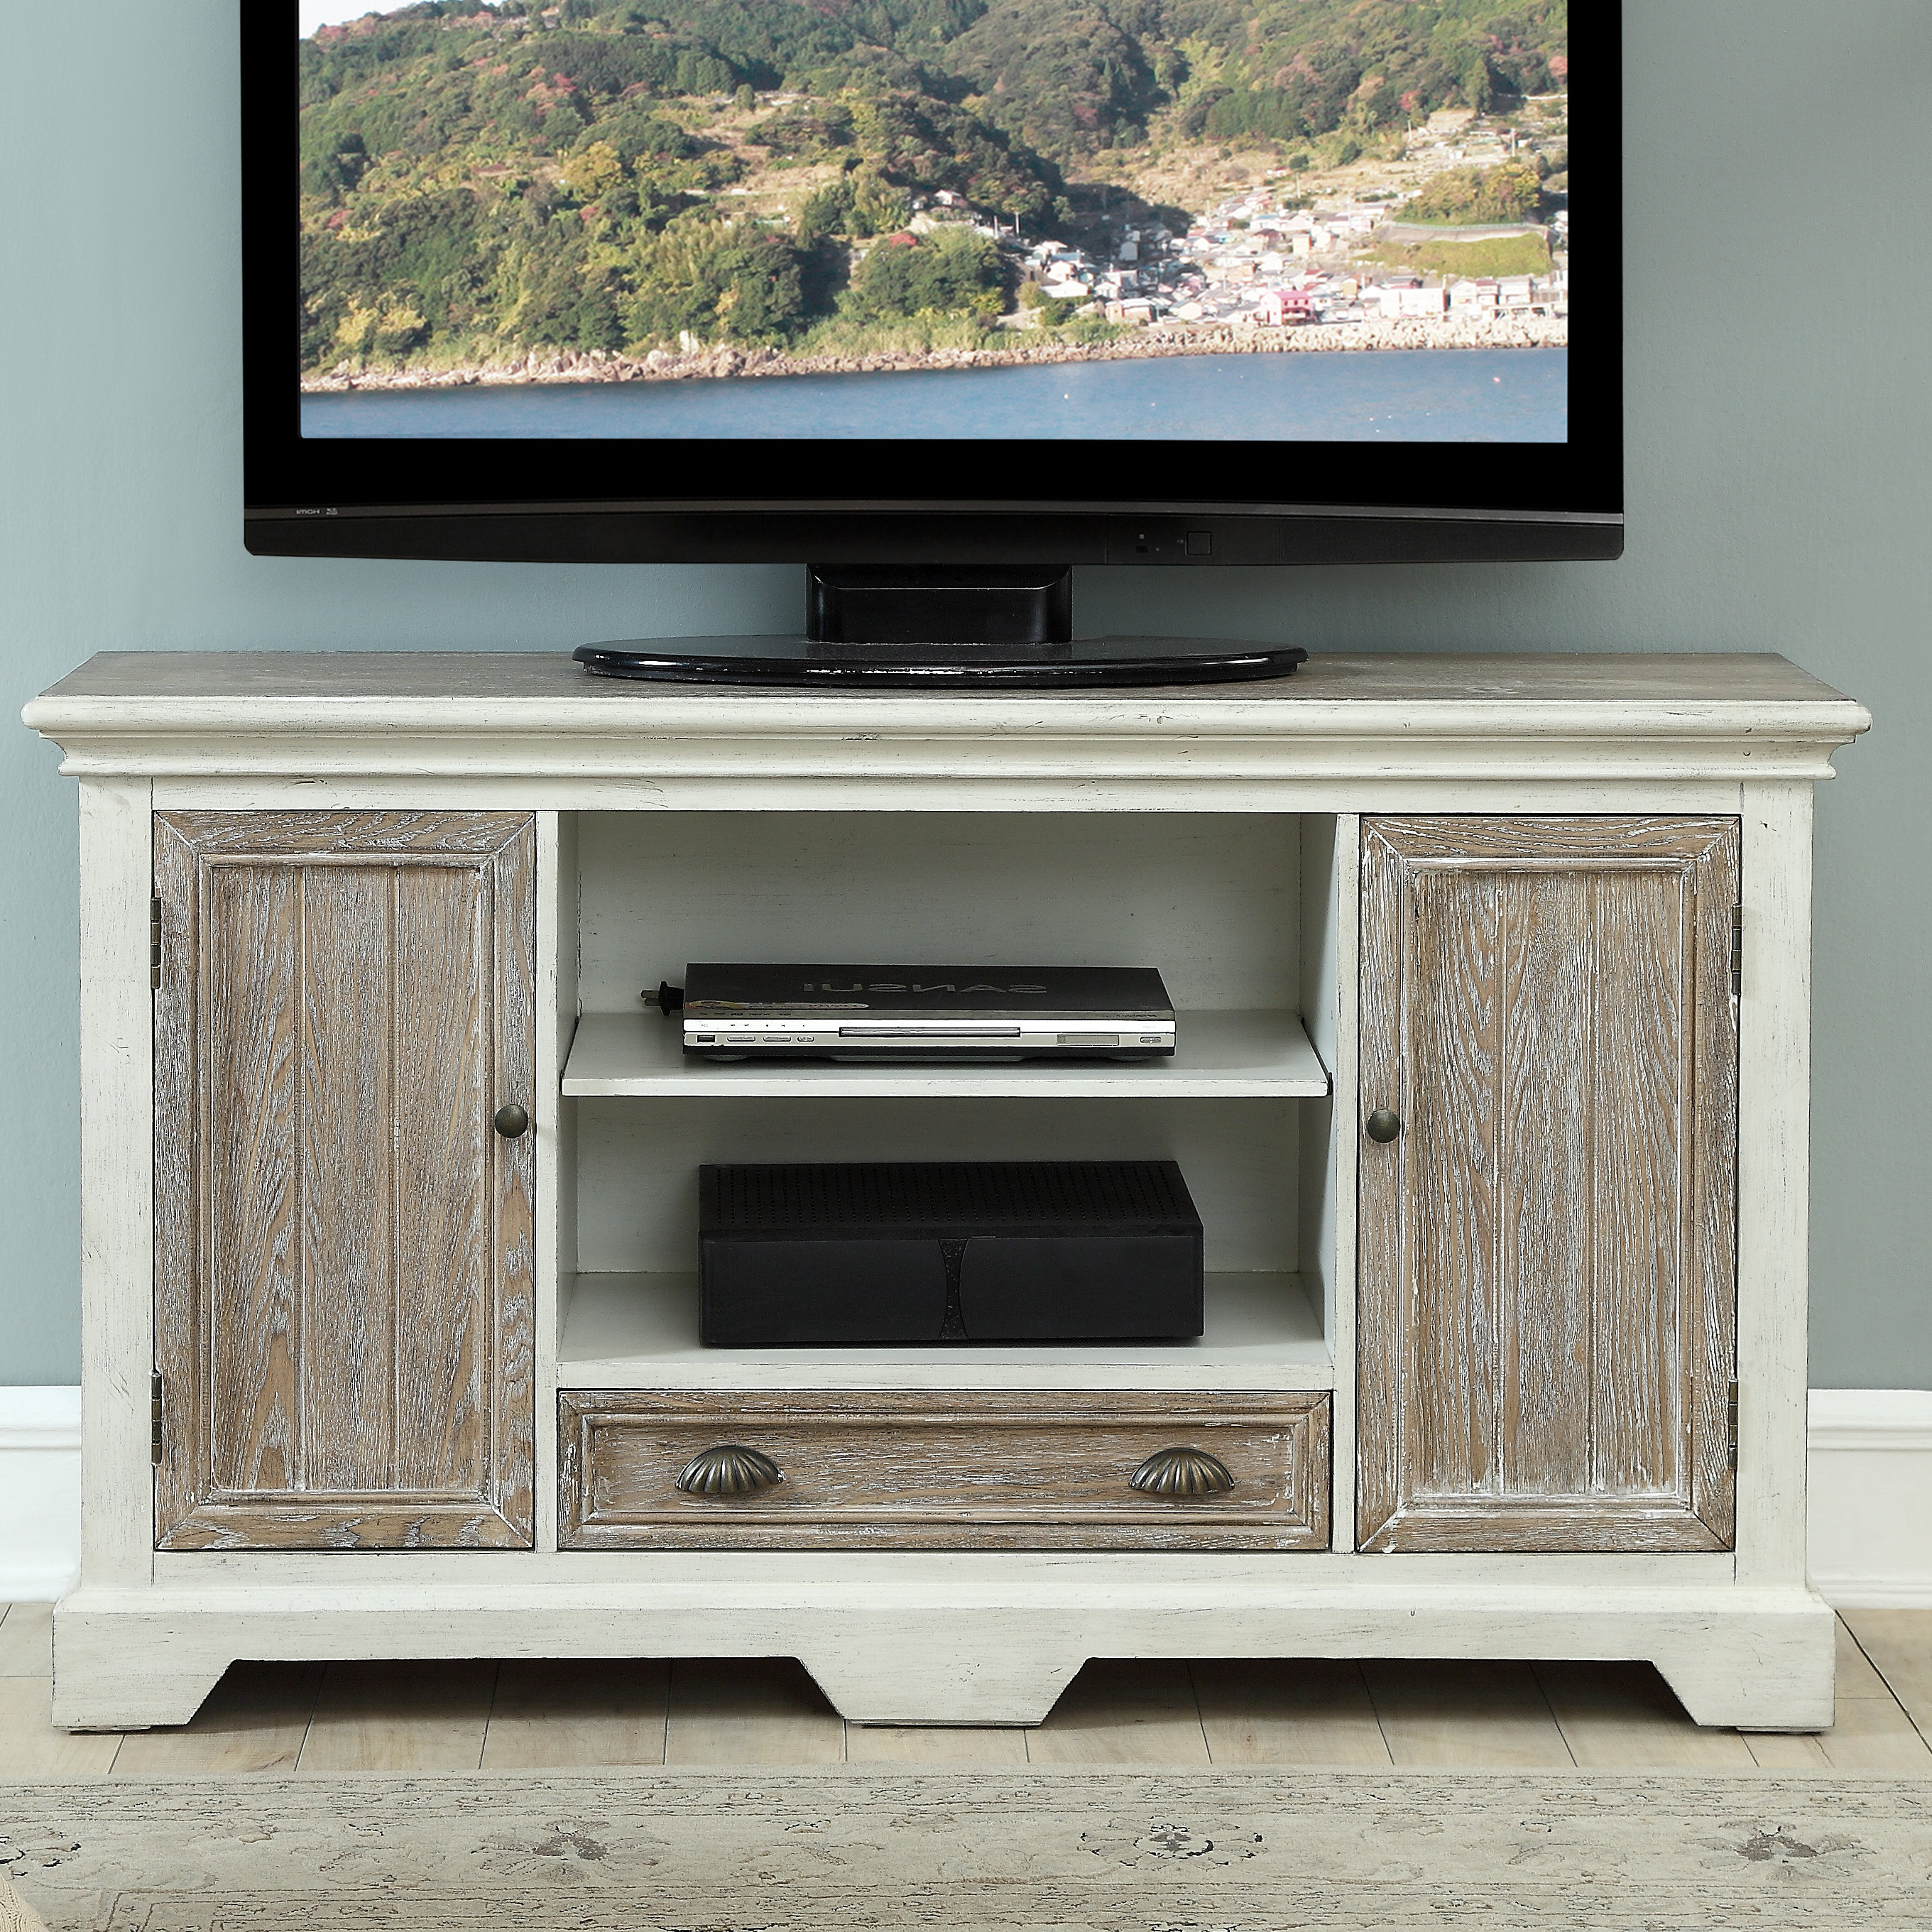 "Birch Lane With Regard To 2019 Parmelee Tv Stands For Tvs Up To 65"" (Gallery 20 of 20)"